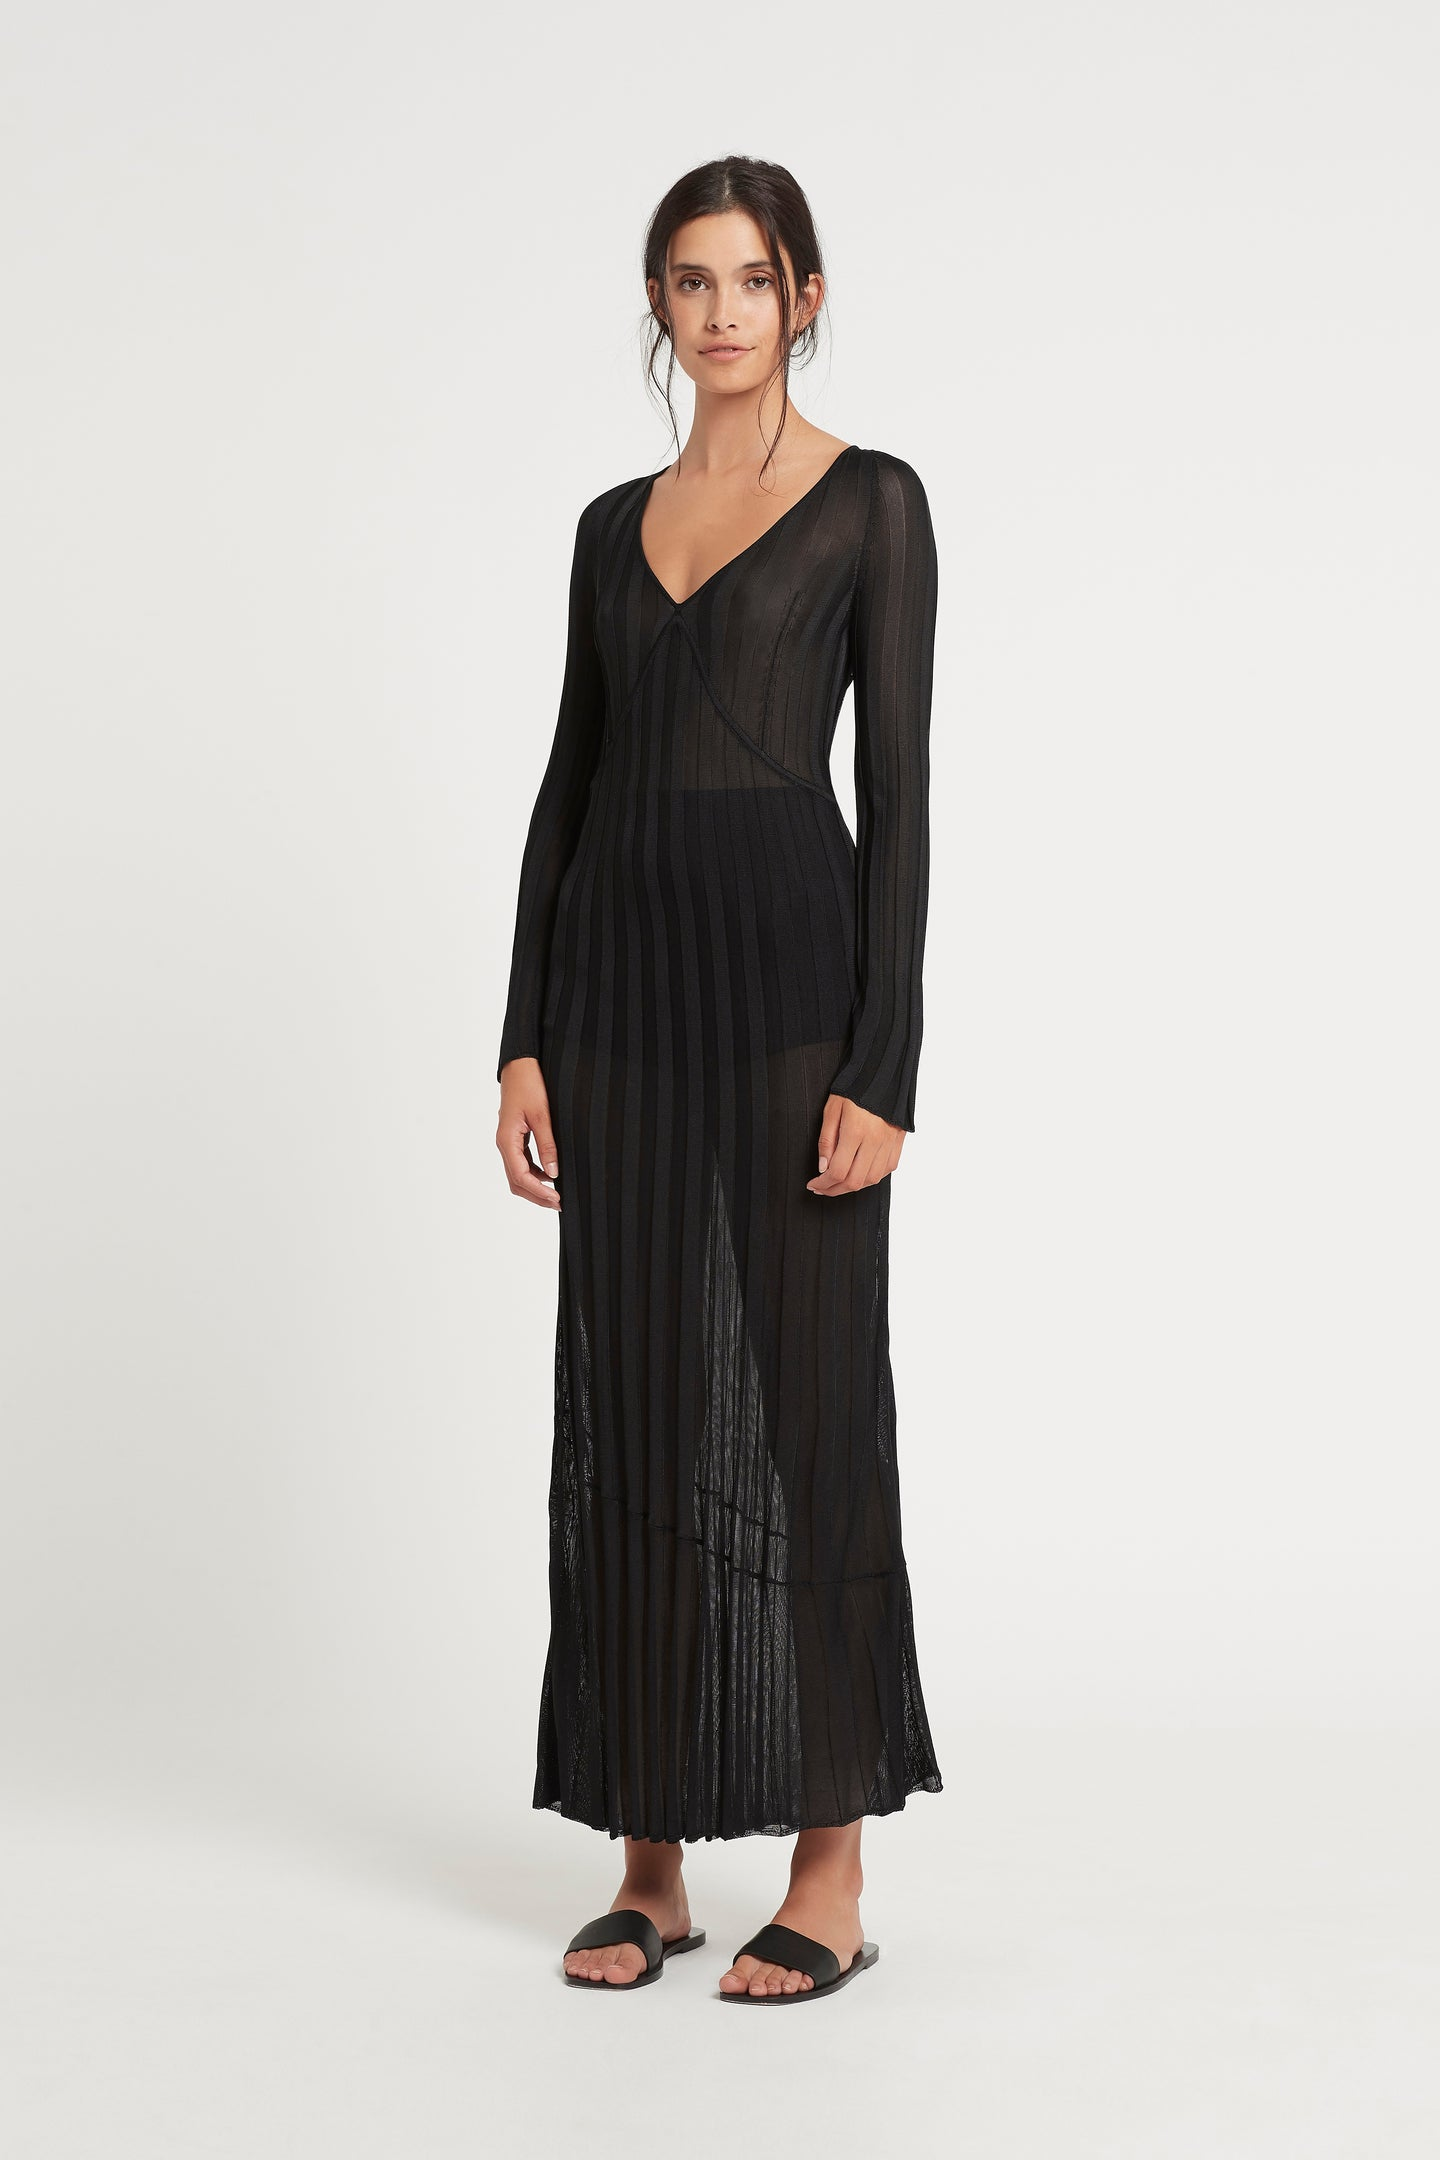 SIR the label AYA V NECK MIDI DRESS BLACK